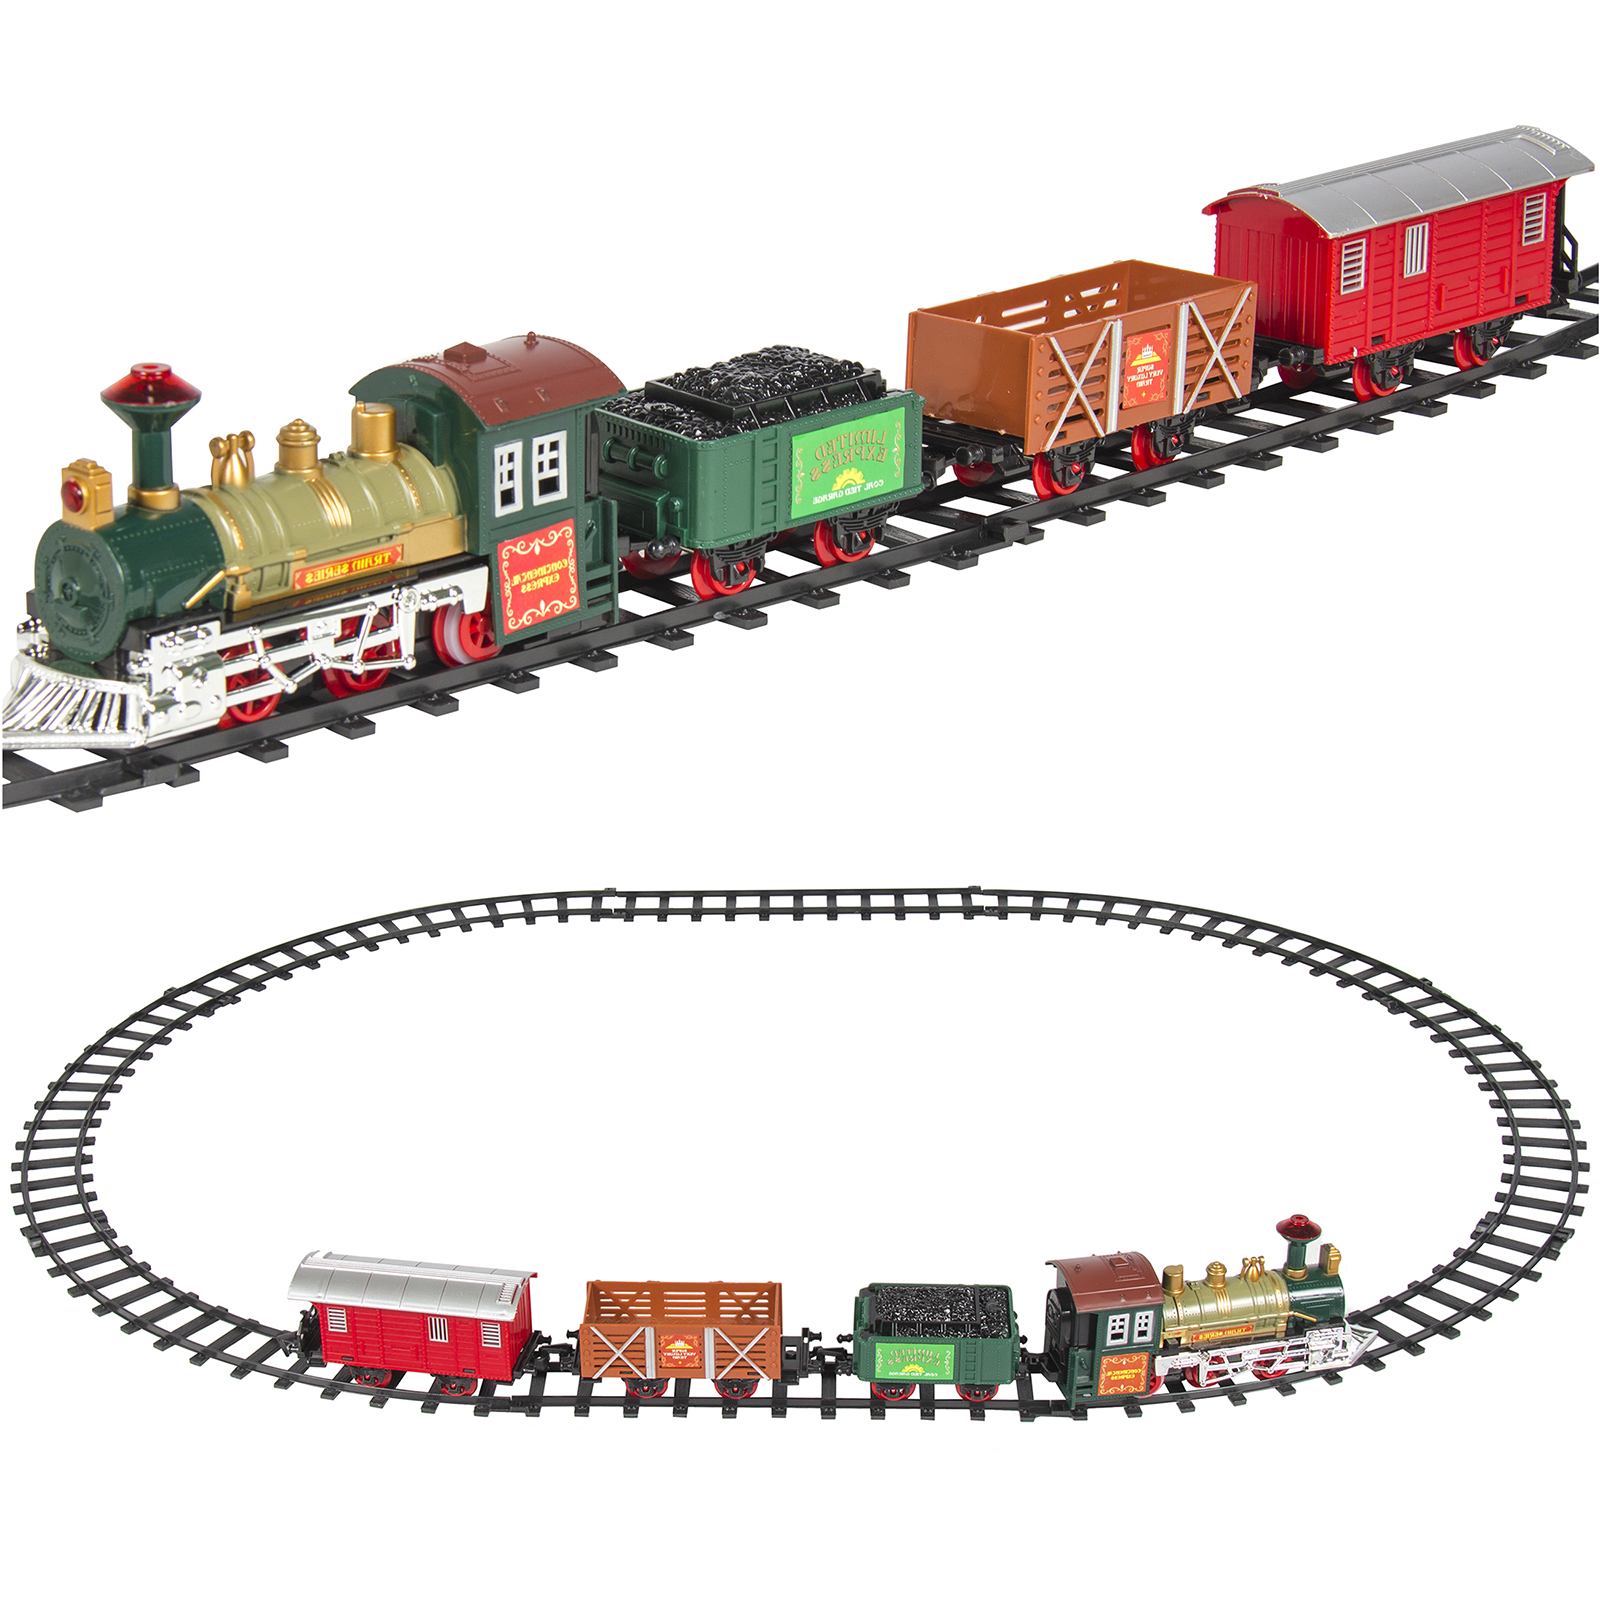 Best Choice Products Kids Classic Electric Railway Train Car Track Play Set Toy w/ Music, Lights - Walmart.com